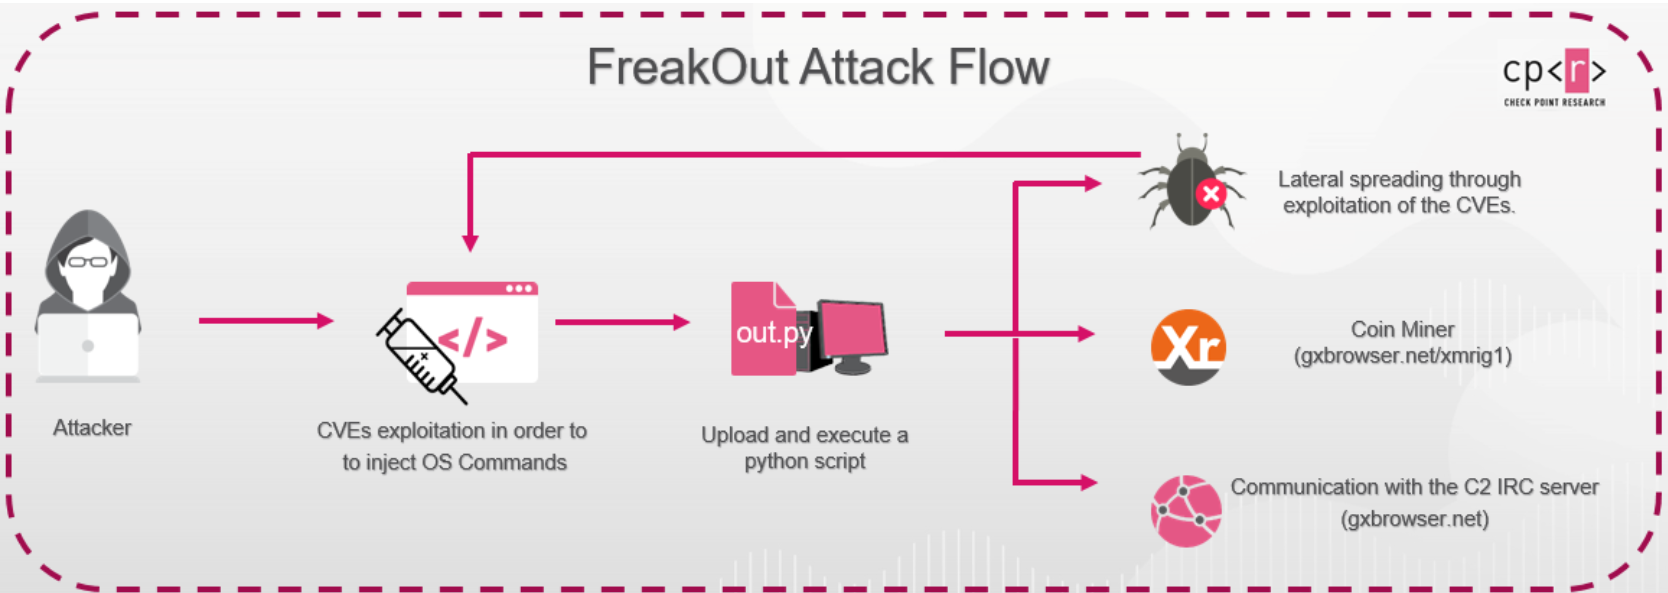 FreakOut botnet target 3 recent flaws to compromise Linux devices